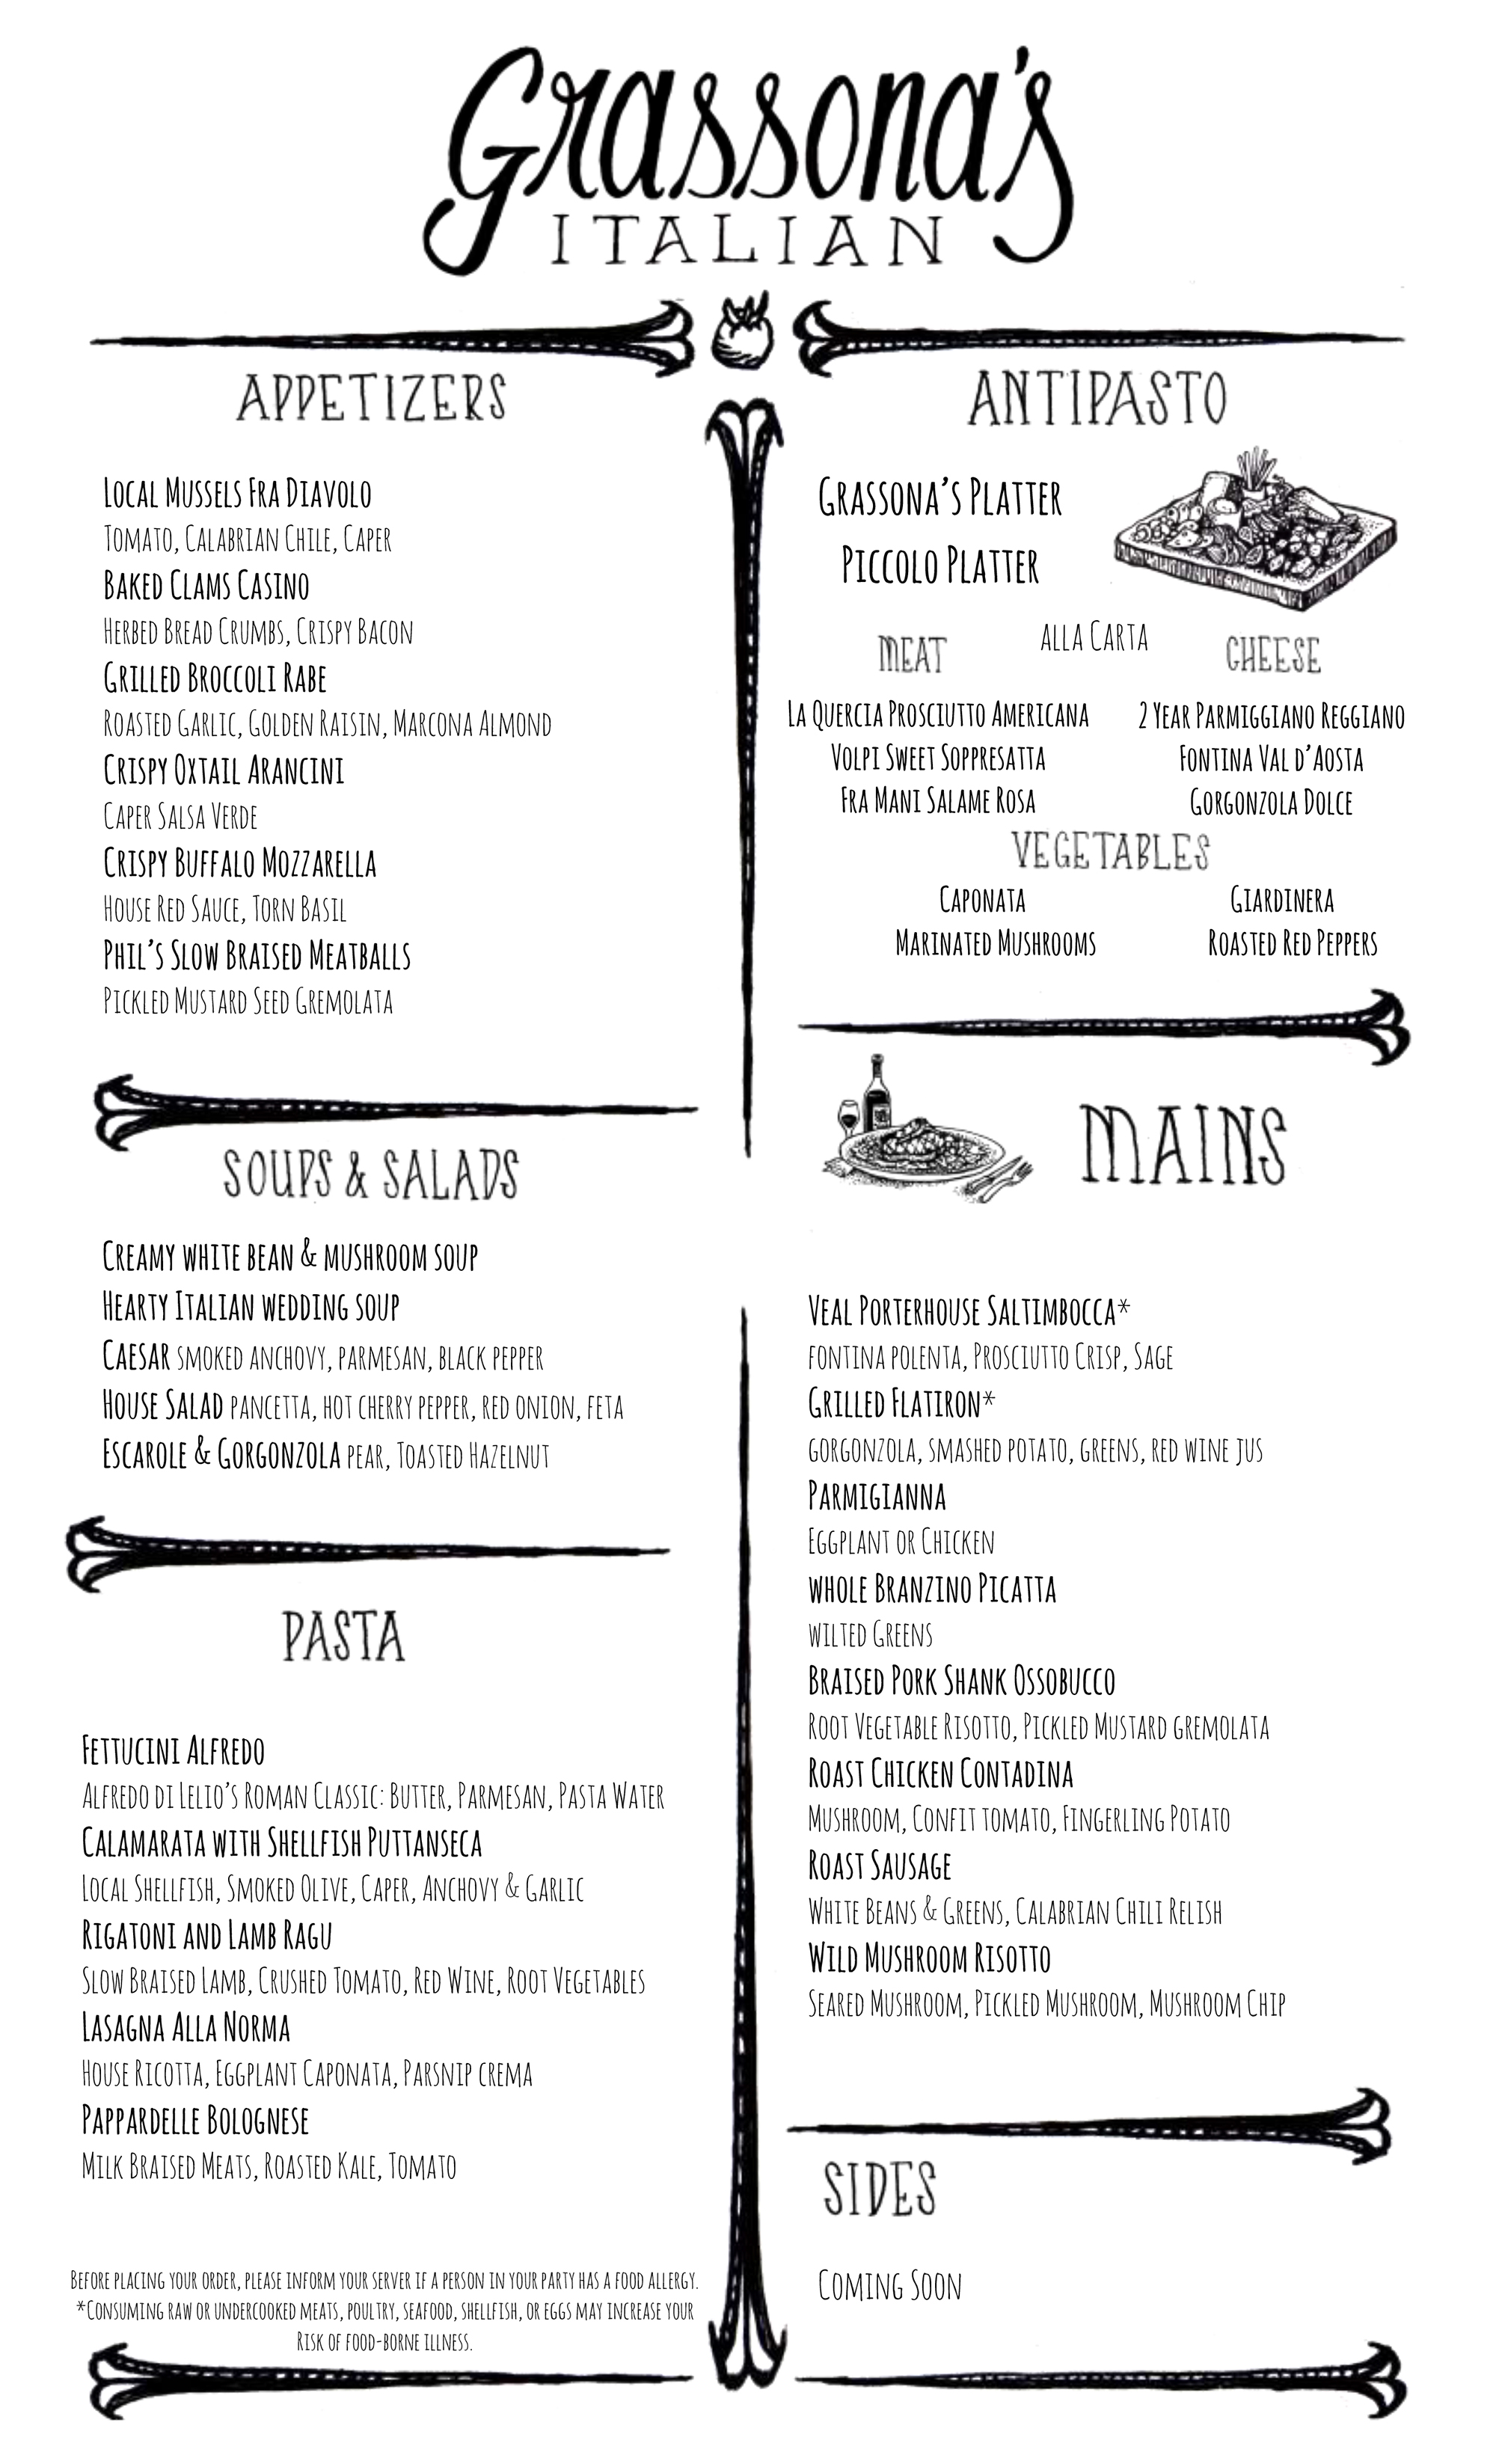 First Look at the Grassona s Italian Food and Drink Menus – Boston